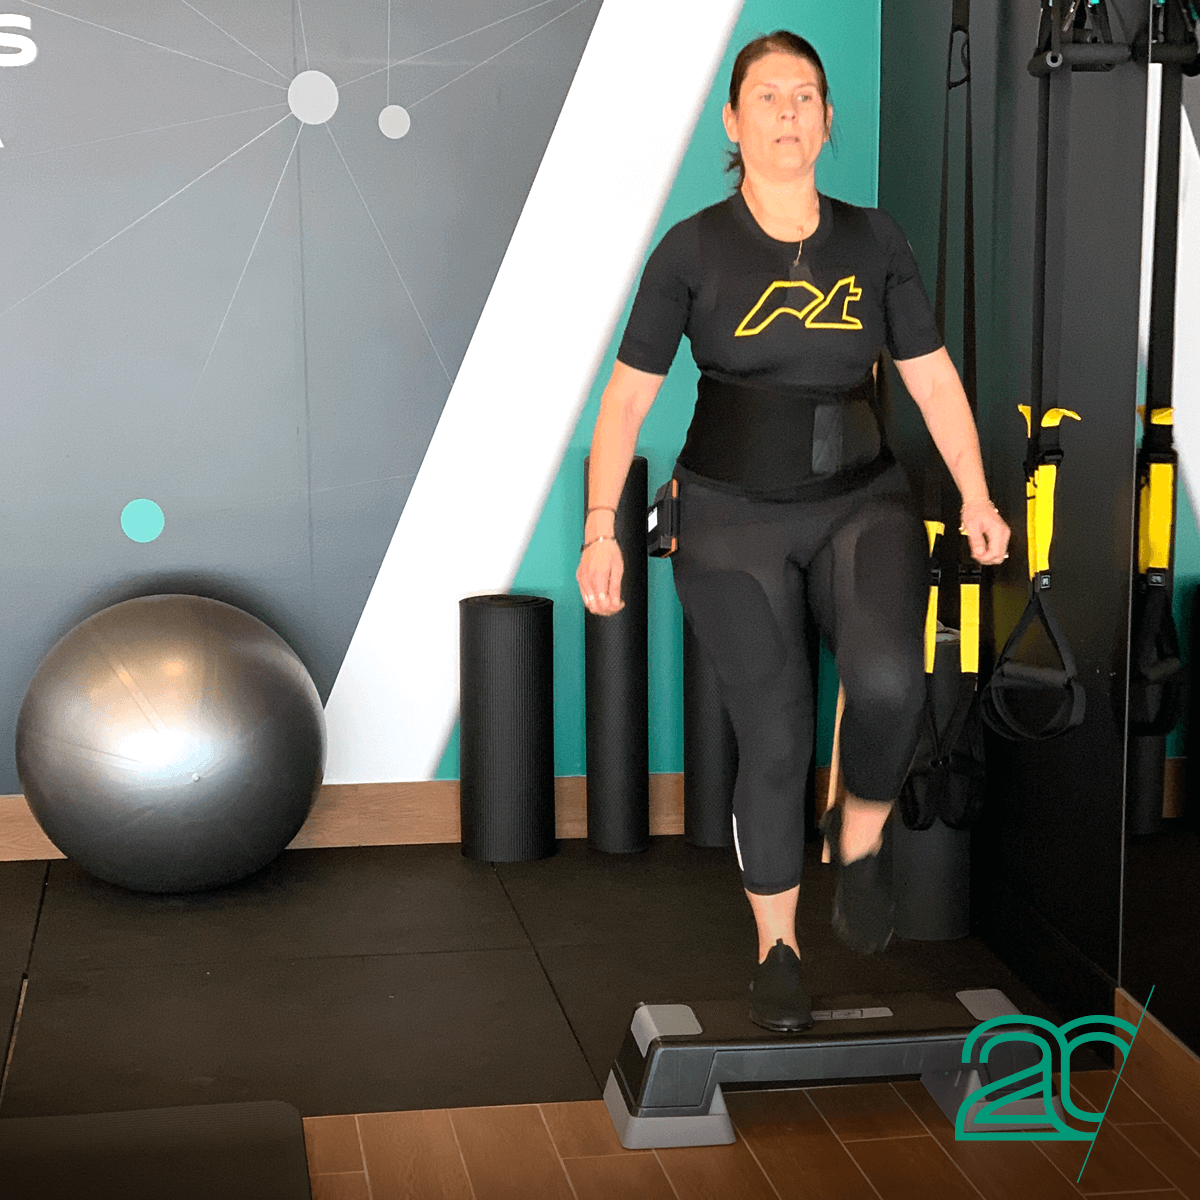 Woman Training with EMS Technology at 20PerFit's Parramatta Studio